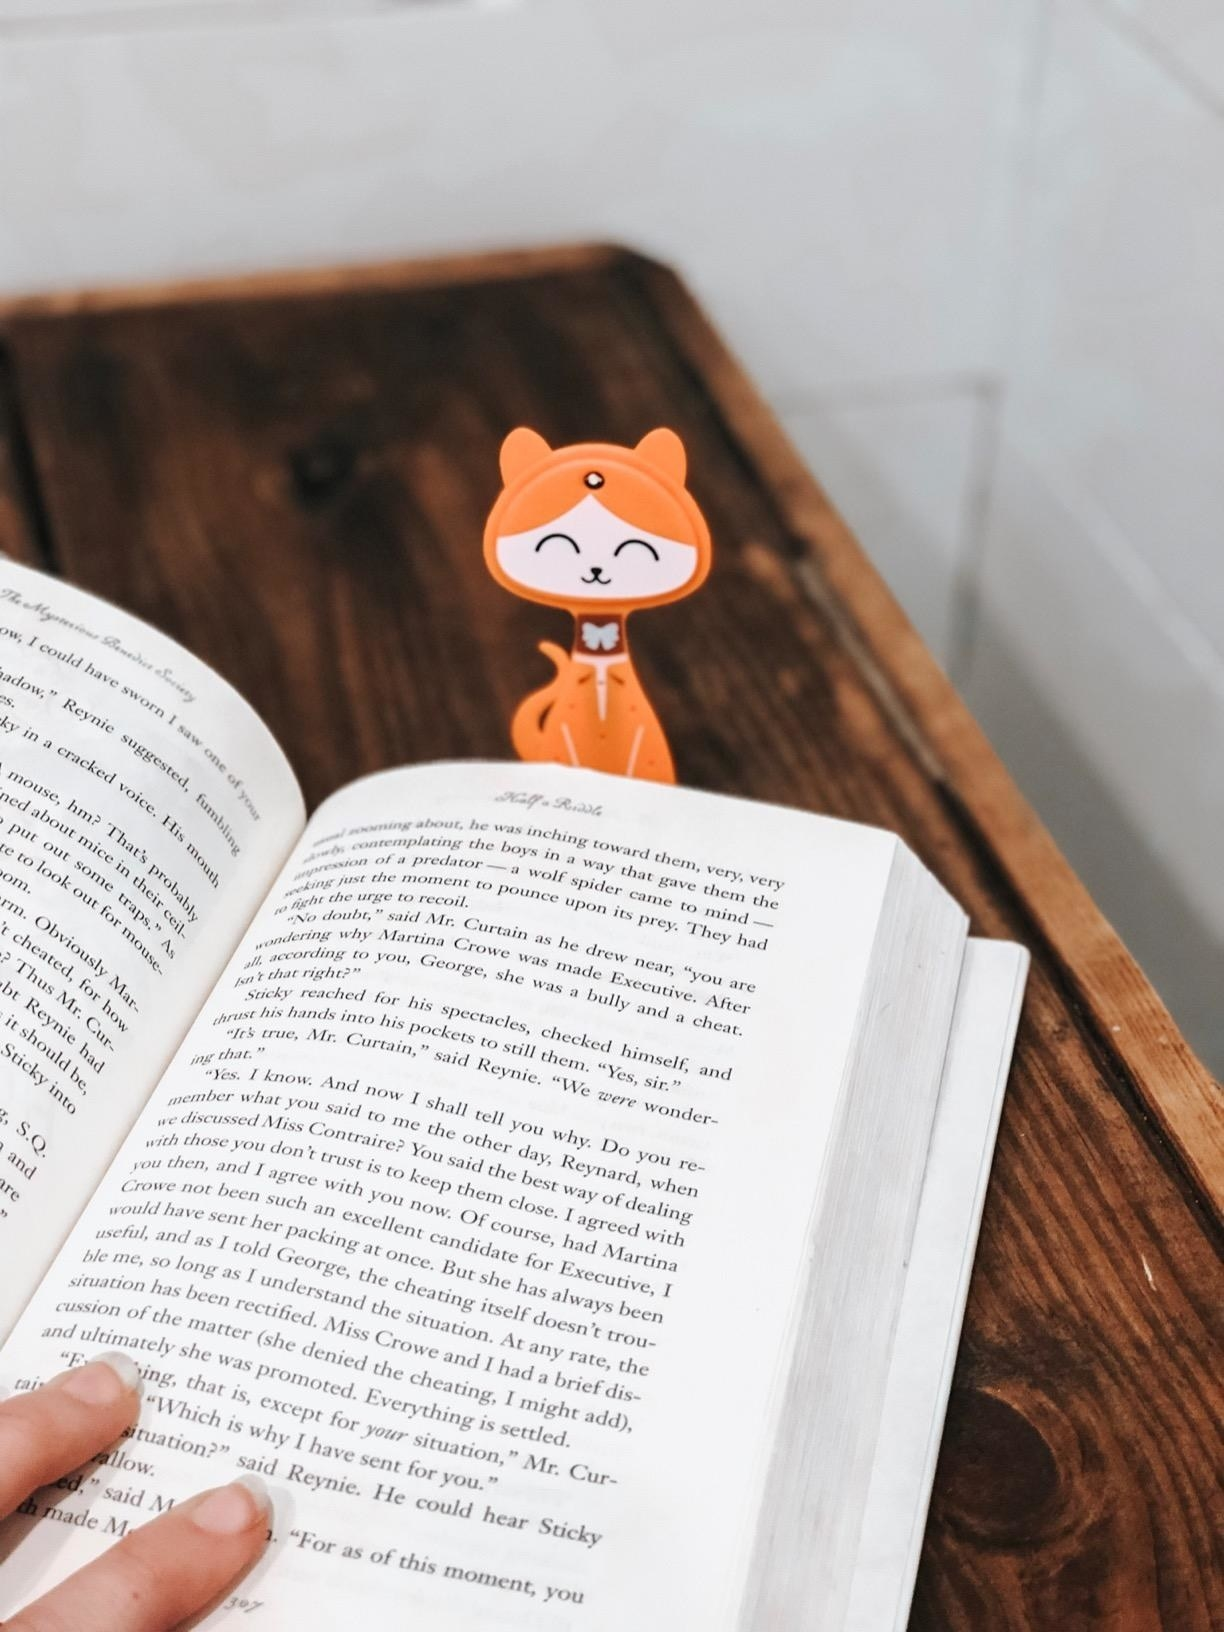 smiling cat light bent over page